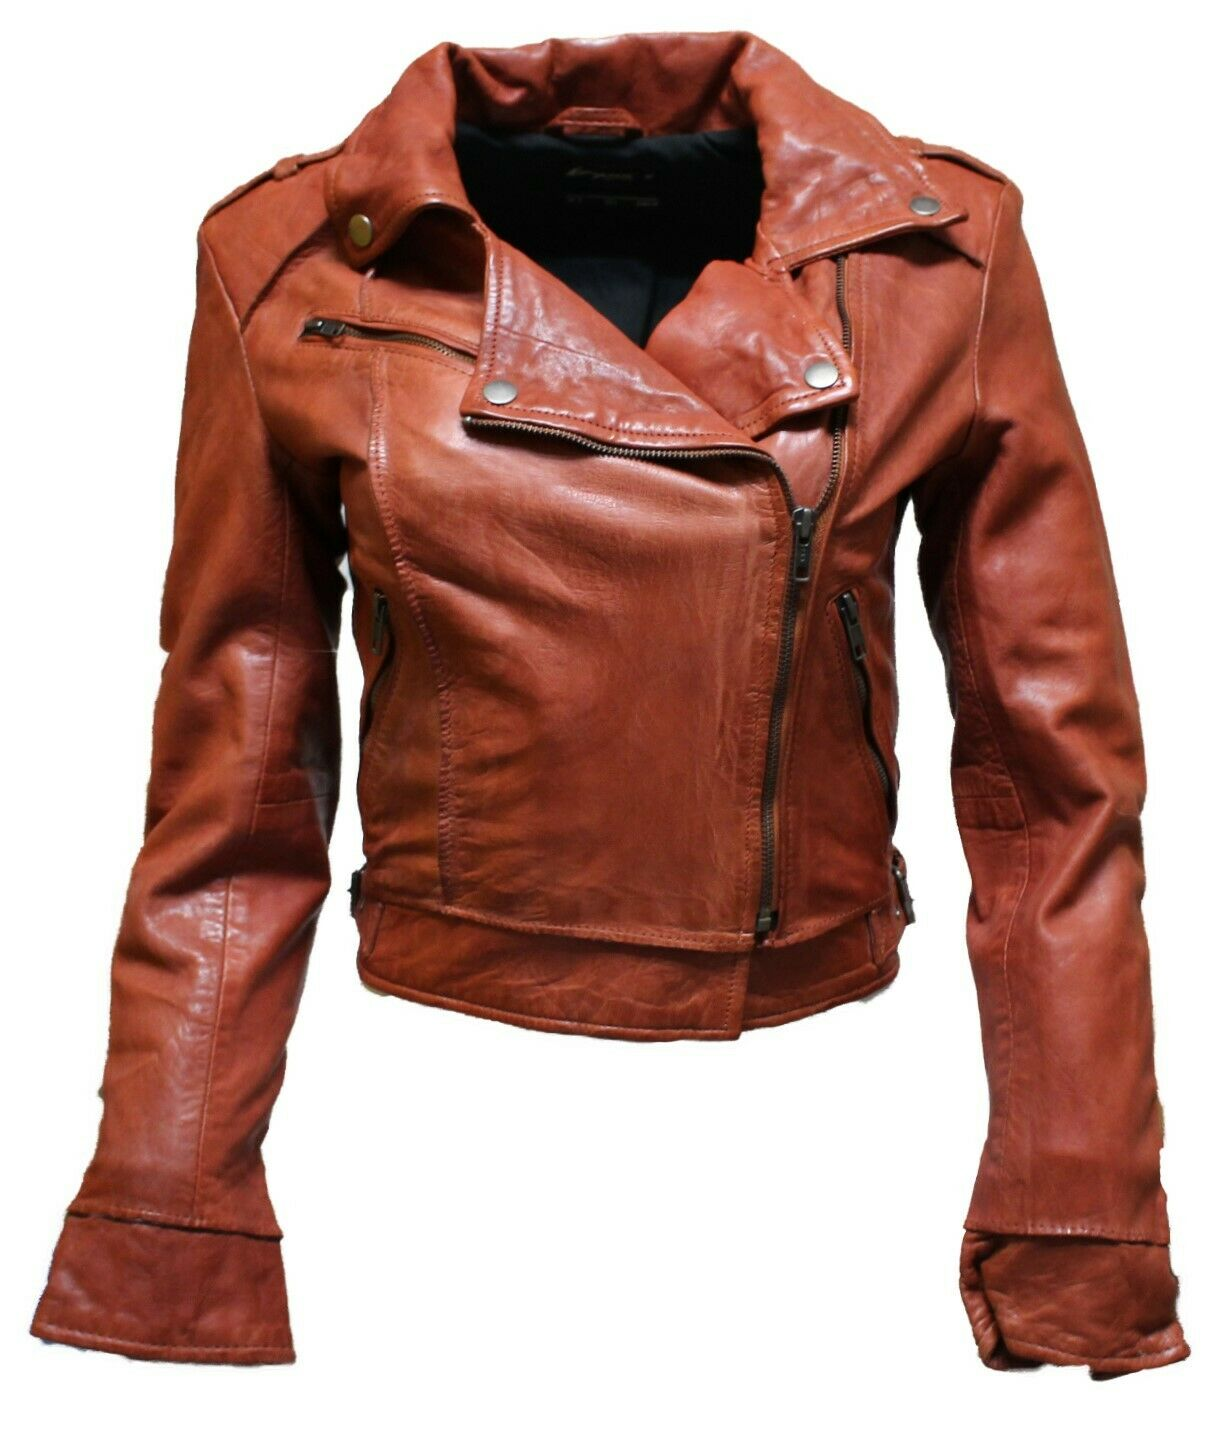 Hampton Damänner Raw Edge Rost Orange Retro Rock Biker Echtleder Jacke